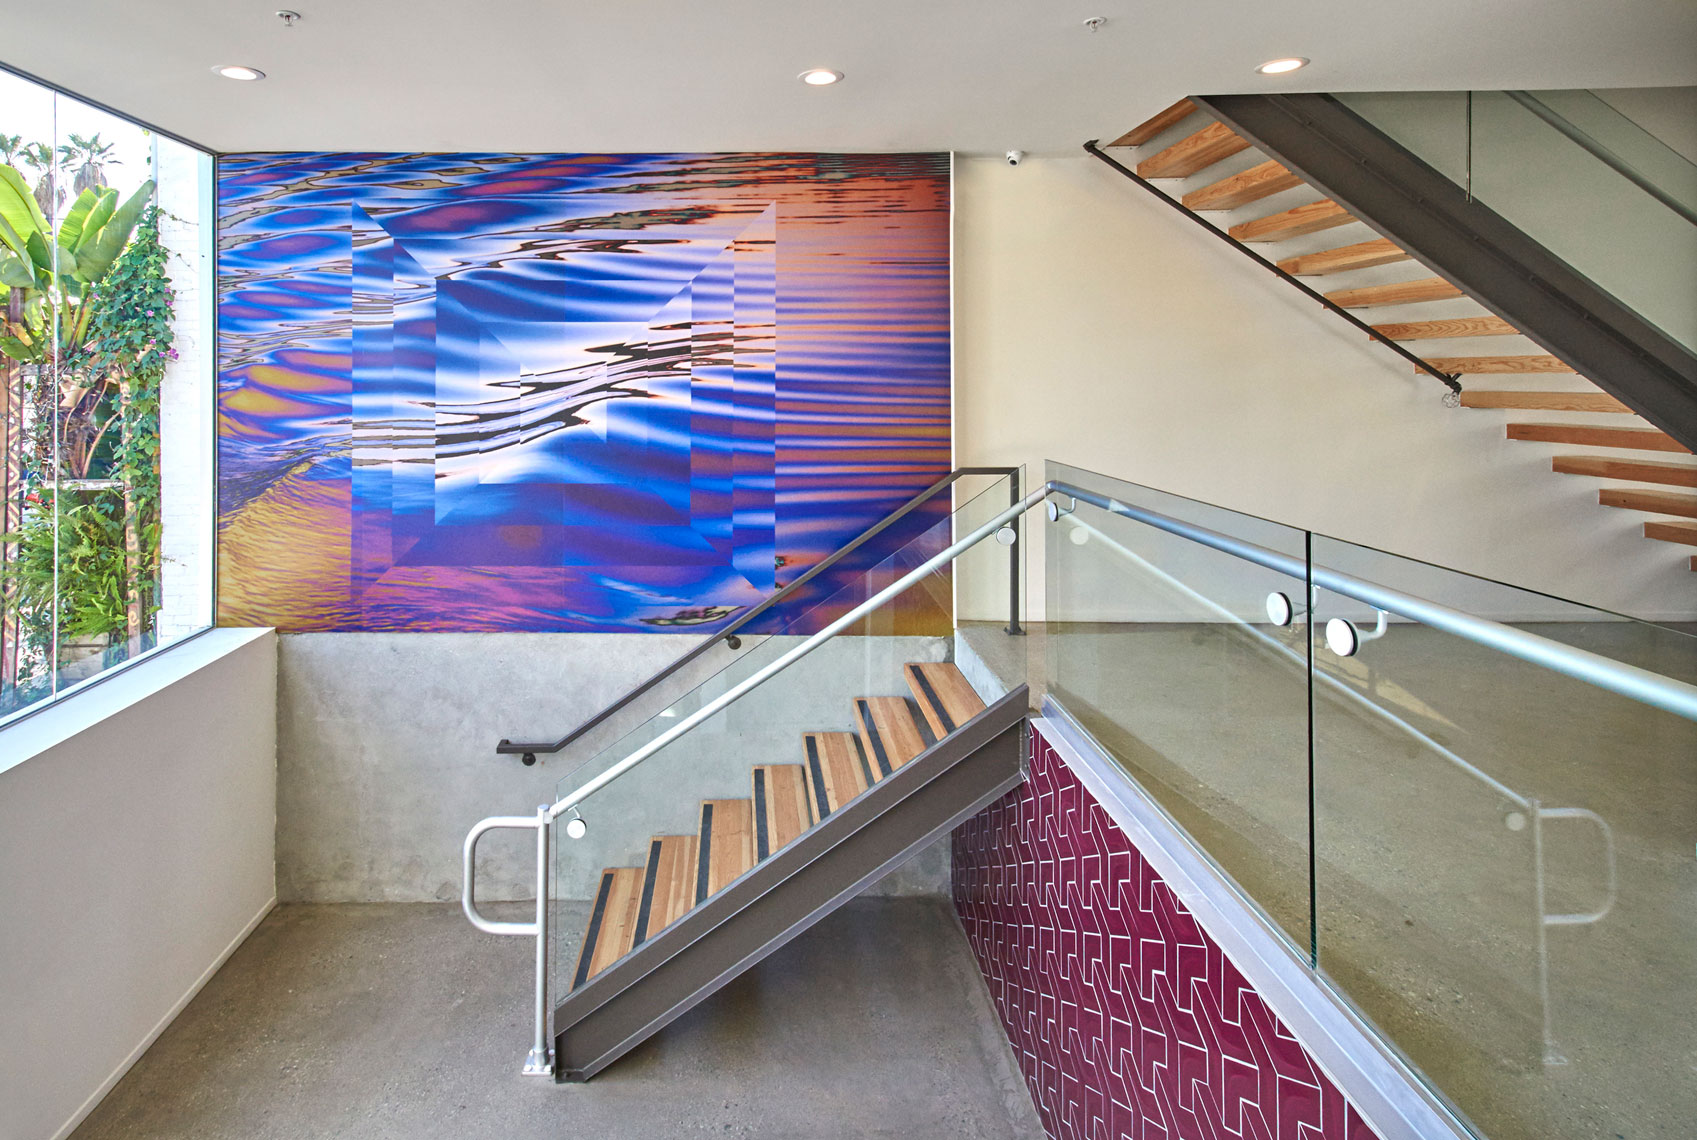 Architectural-photography-of-entry-mural-and-stairway-of-commercial-building-Joe-Atlas-architectural-photographer-Los-Angeles.